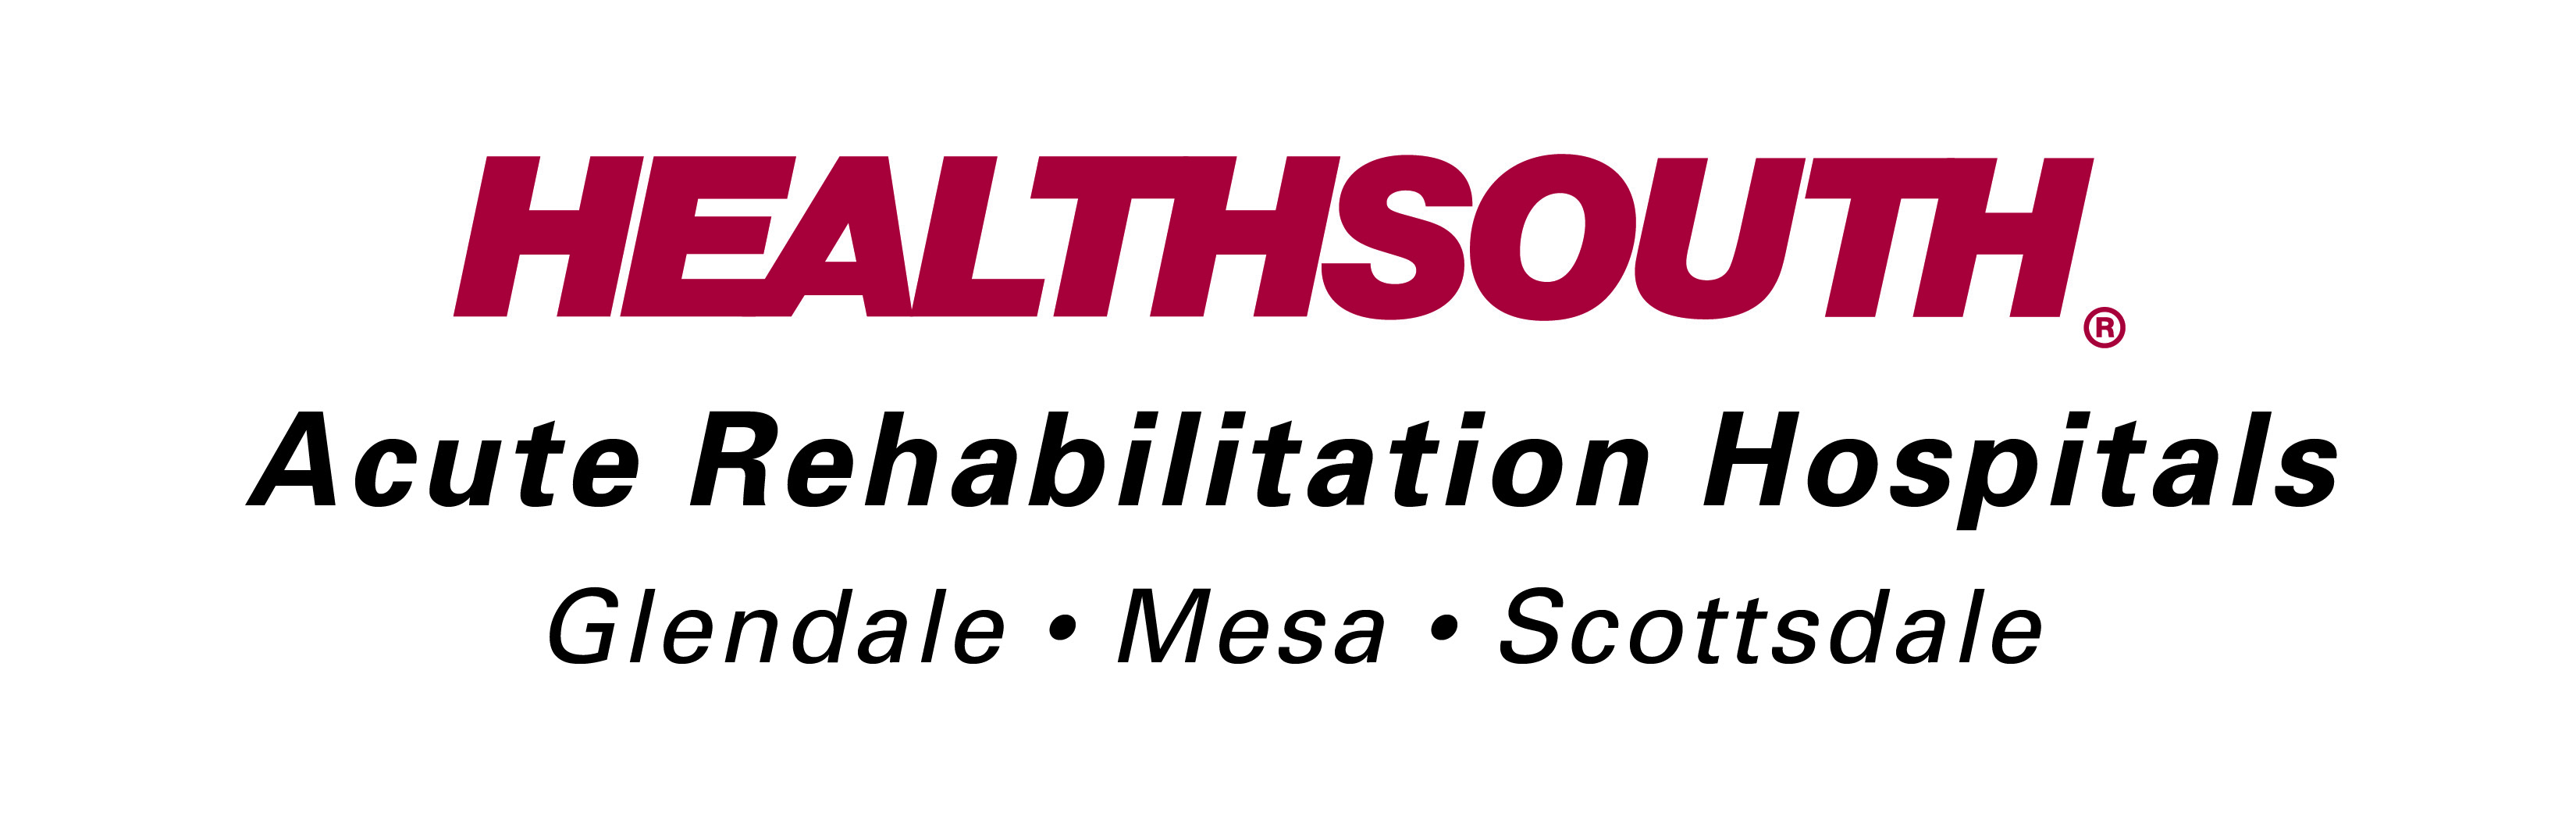 360 healthsouth